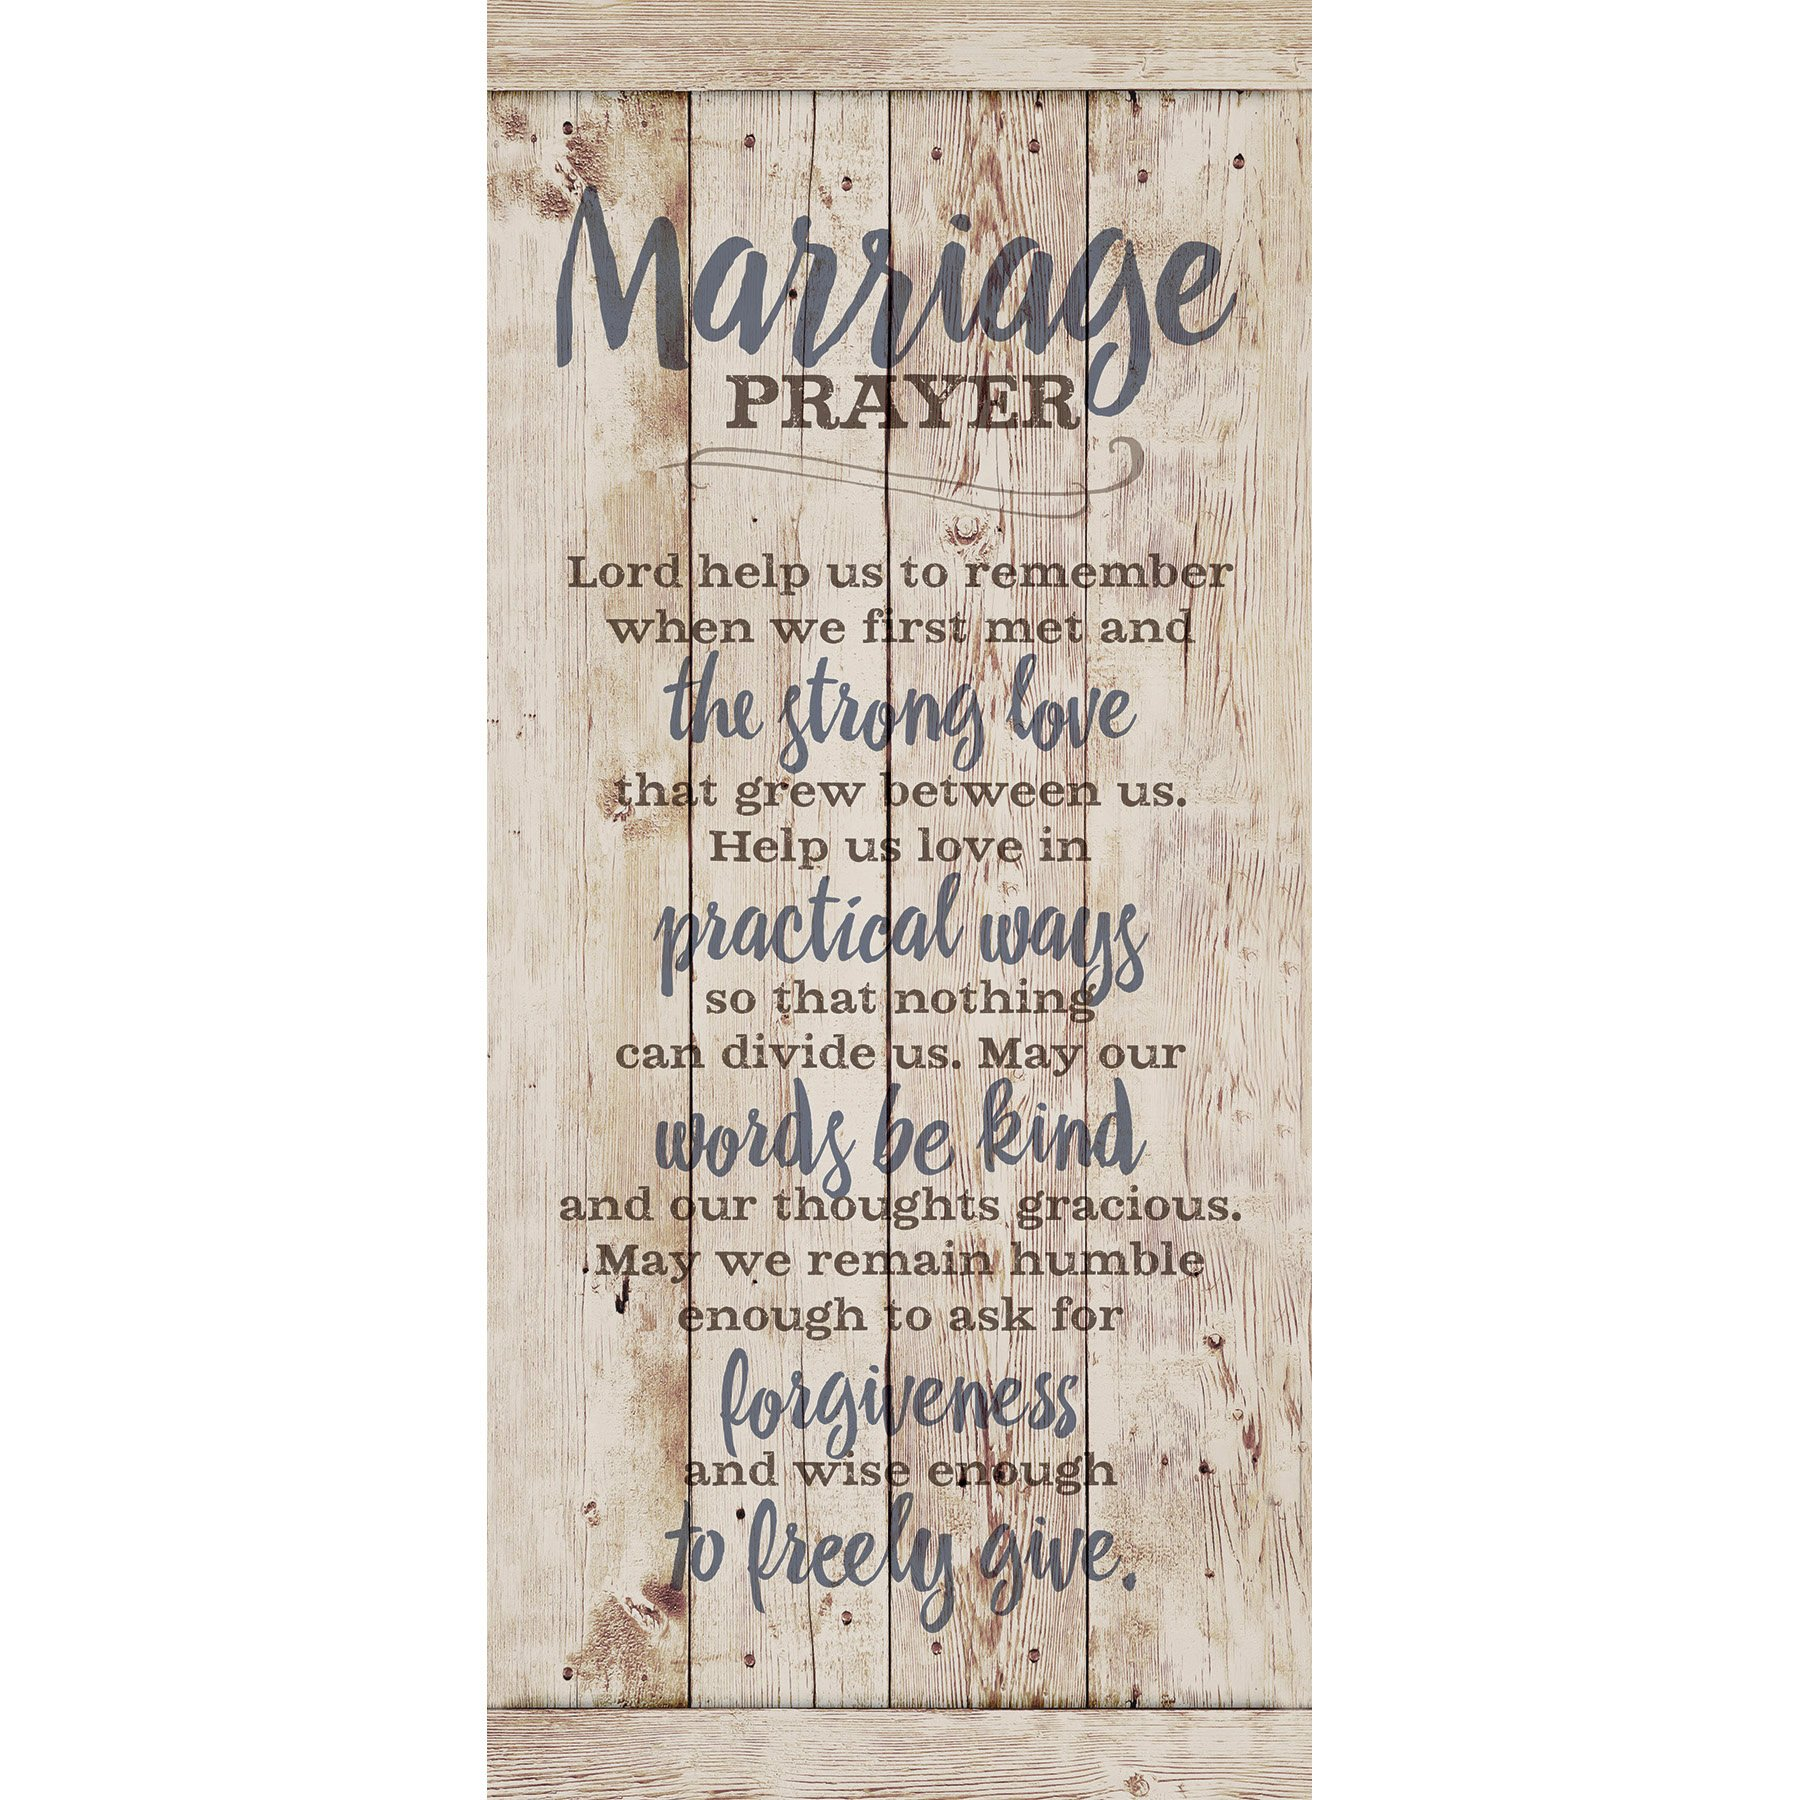 Marriage Prayer...New Horizons Wood Plaque by Dexsa by Dexsa